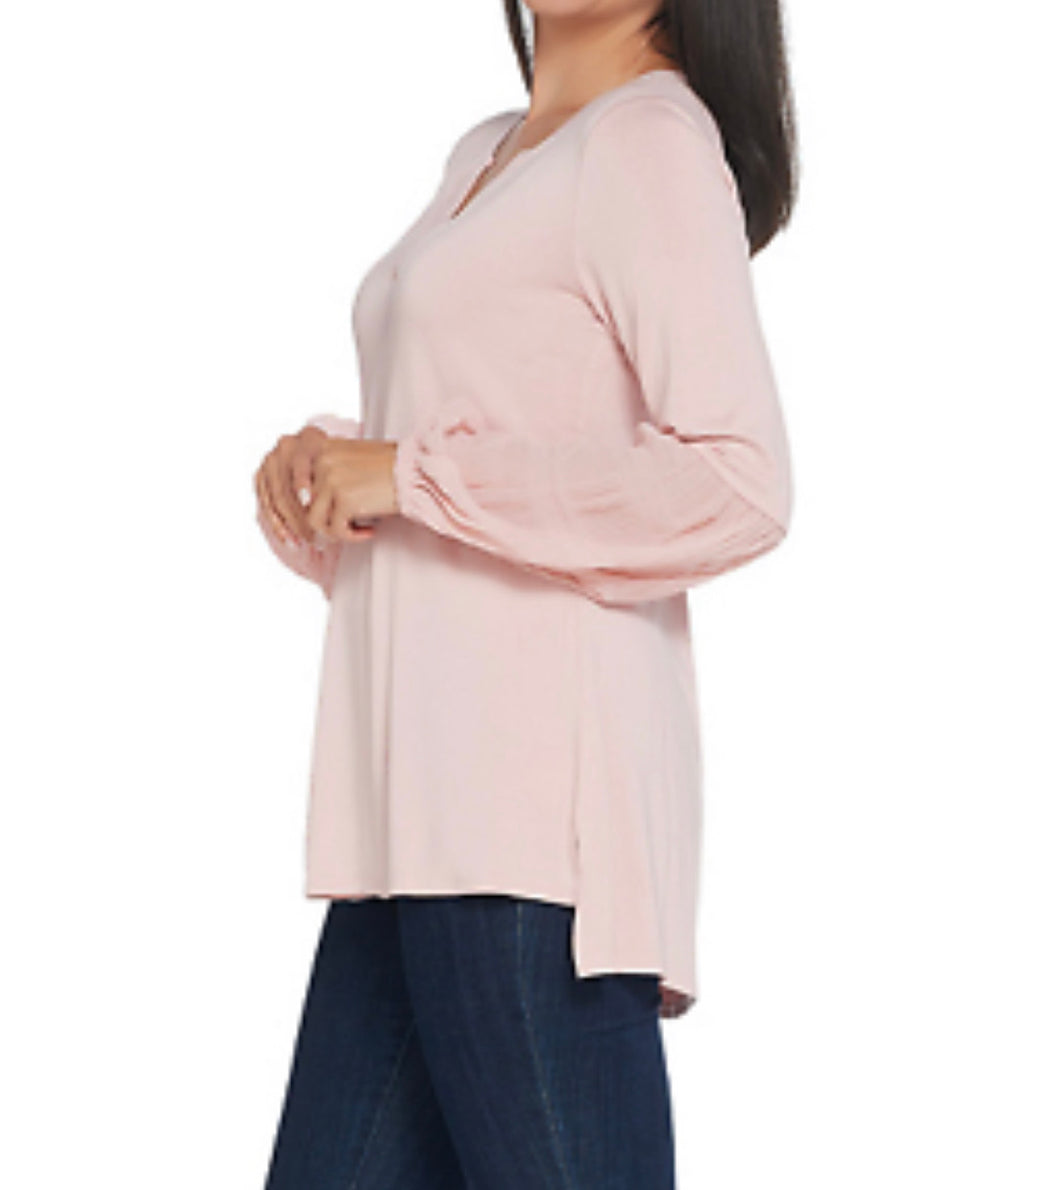 H by Halston Knit Top with Chiffon Blouson go Sleeves Ballet Pink	XX-Small - Midtown Bargains